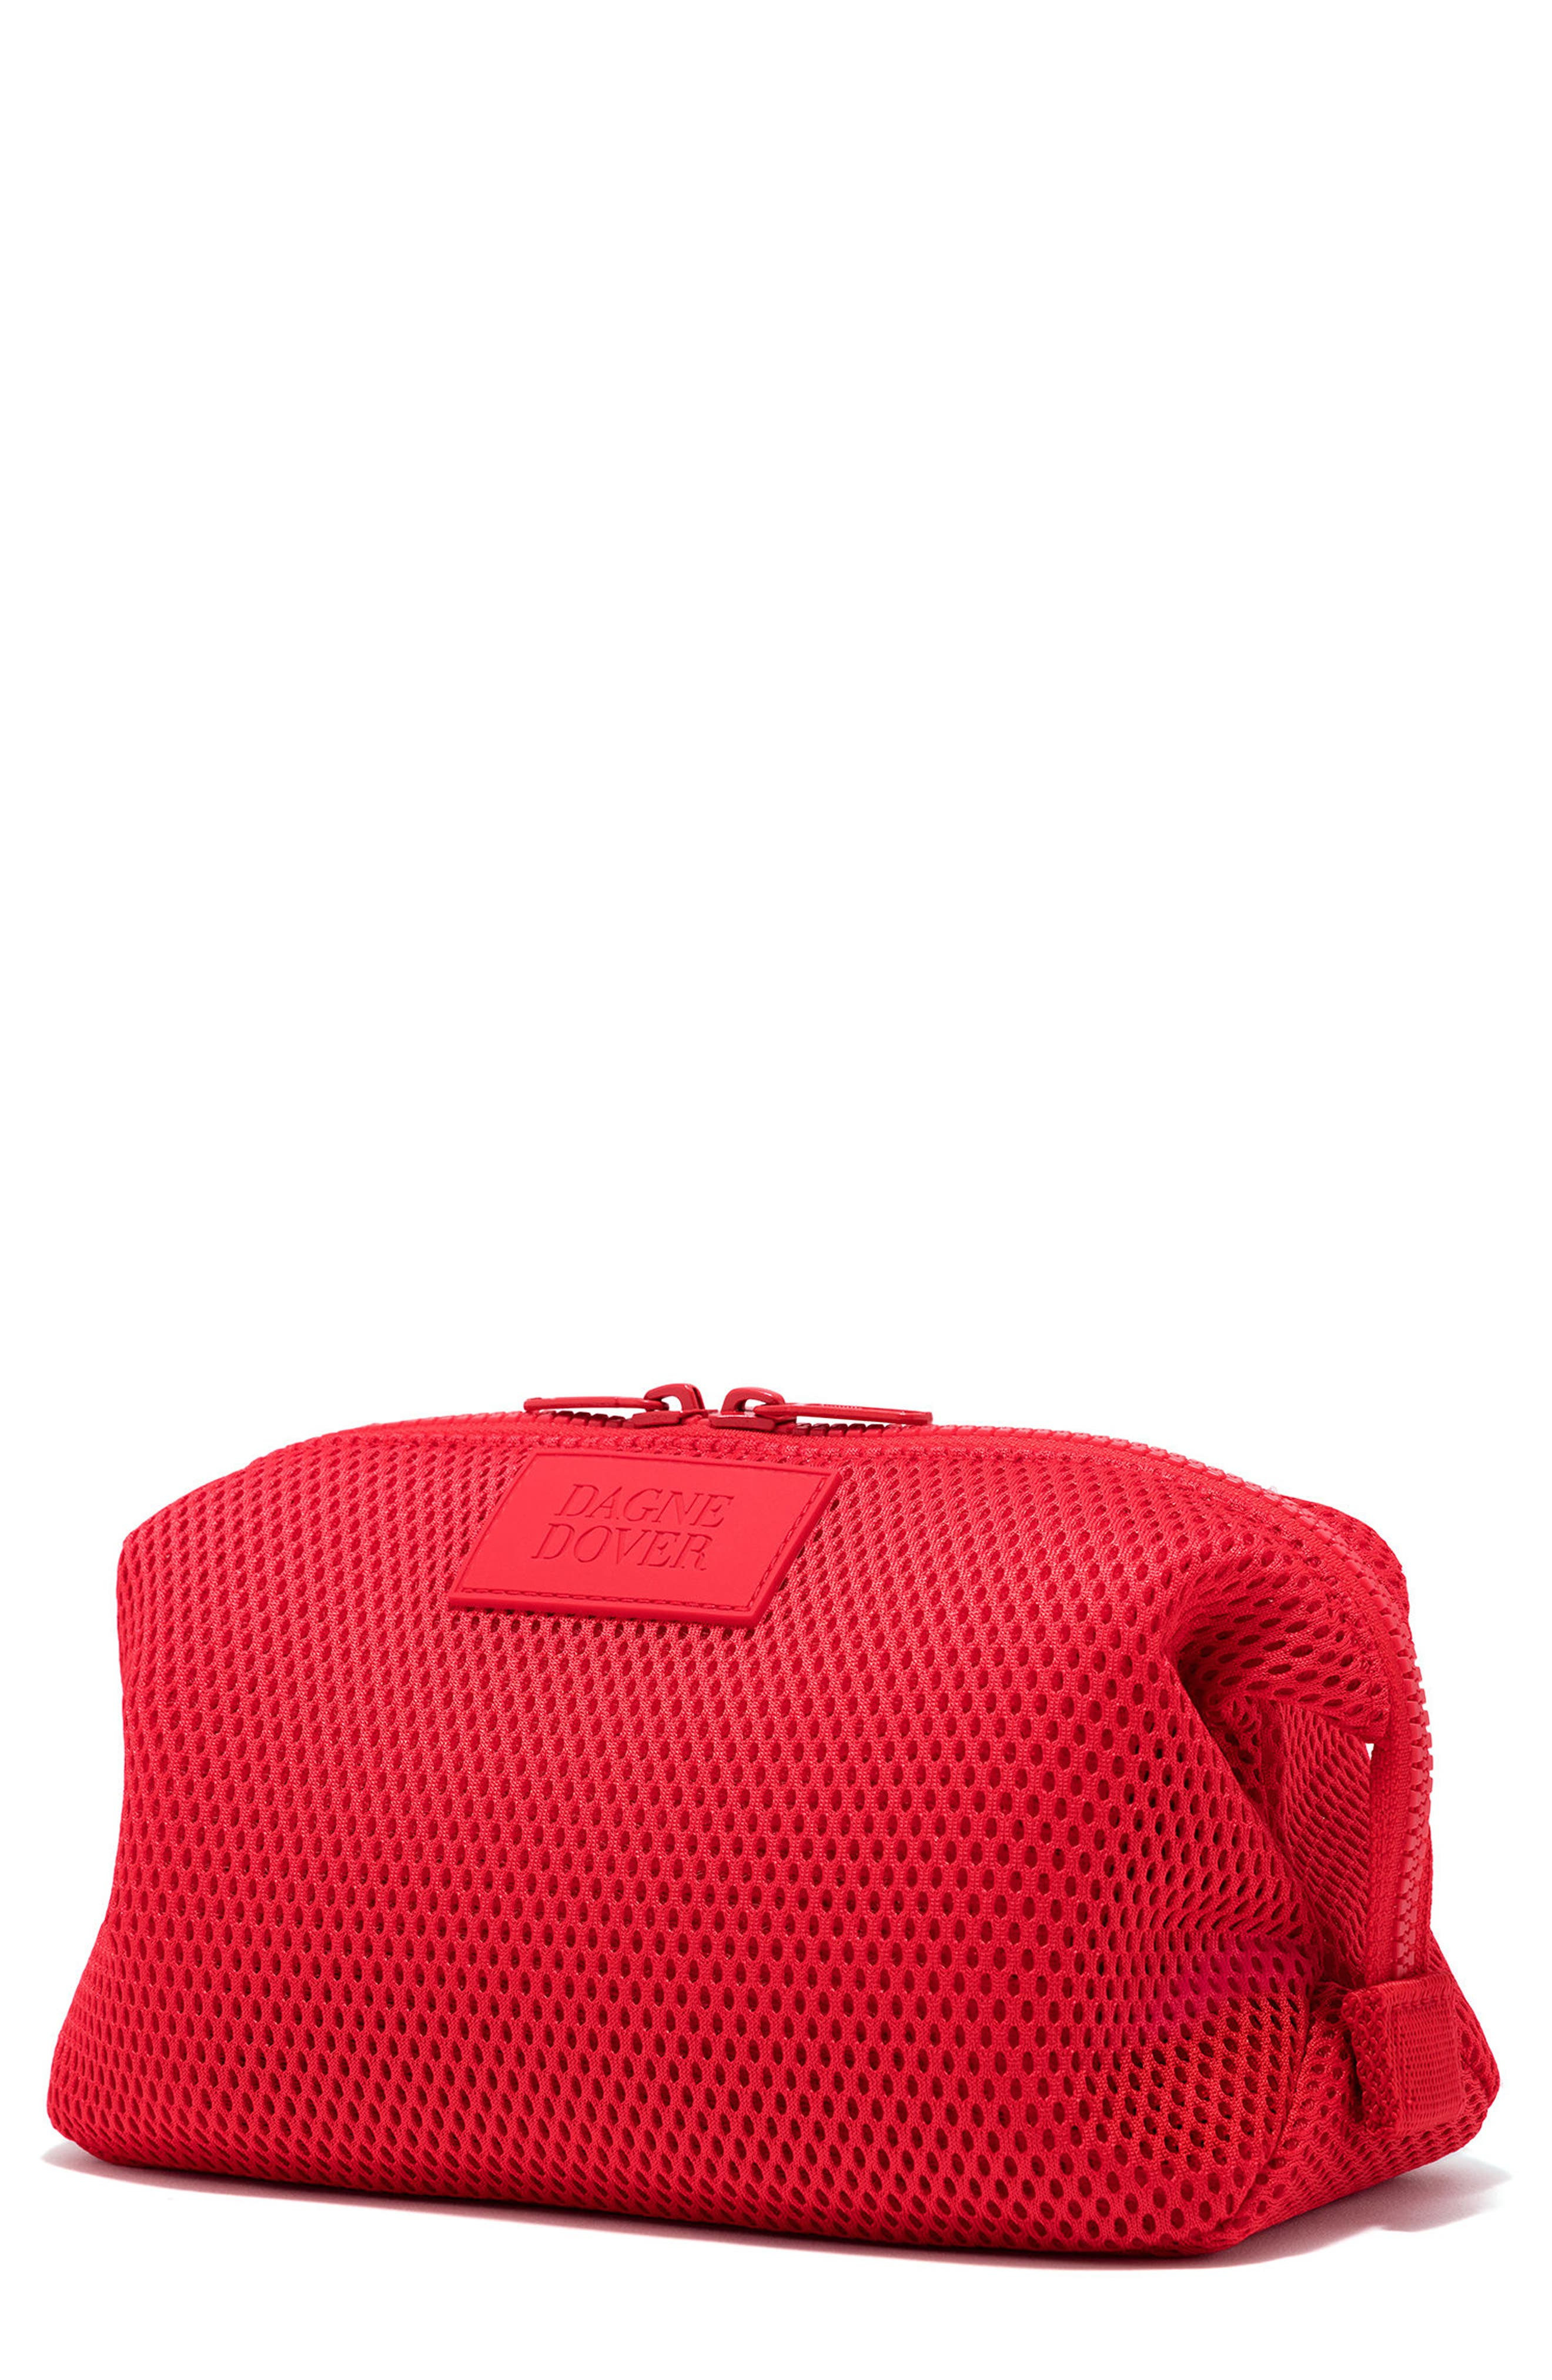 Large Hunter Neoprene Toiletry Bag,                             Main thumbnail 1, color,                             Poppy Air Mesh